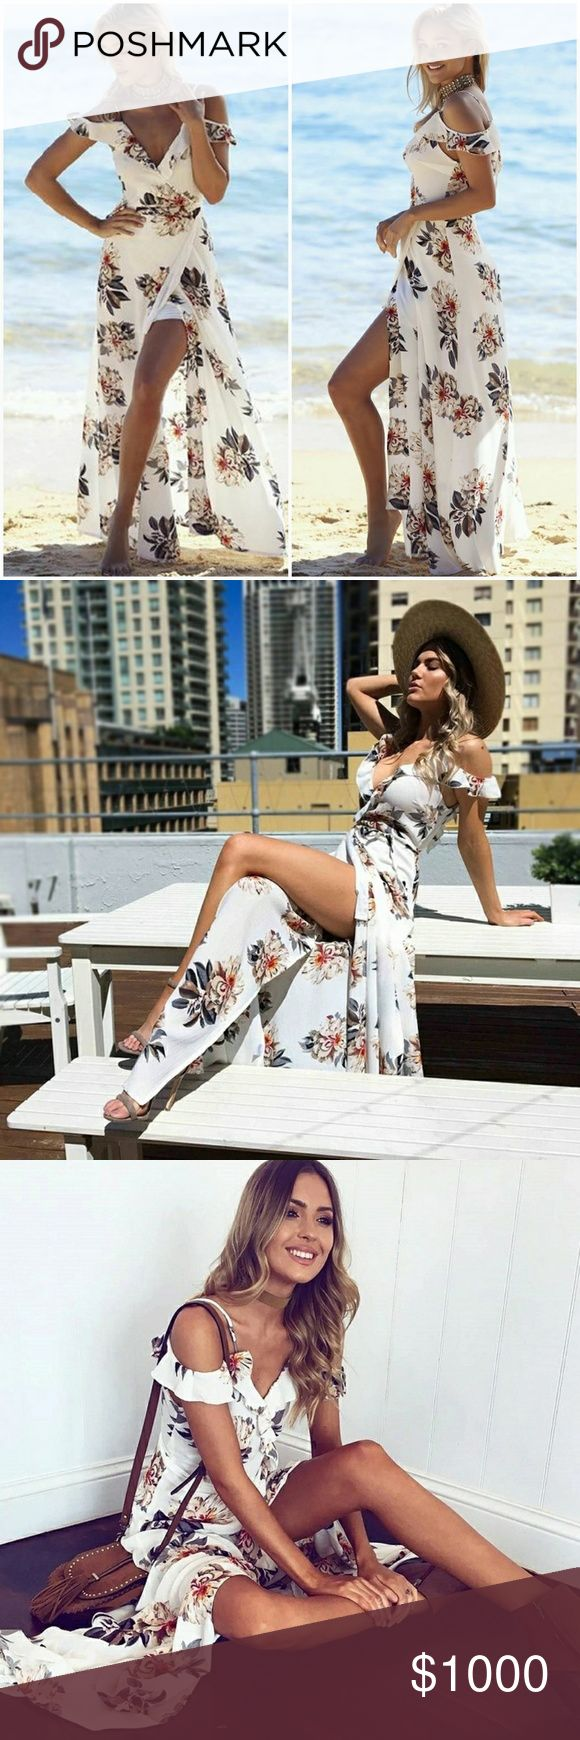 •Just In•Cold Shoulder Floral Print Maxi Dress • Re ordering more sizes let me know below what size you need.  White floral print maxi dress with slit up the side and cold shoulder ruffle vneck top.  Sizing: S 4-6 M 8-10 L 12 Material: Polyester AJ's Threads  Dresses Maxi